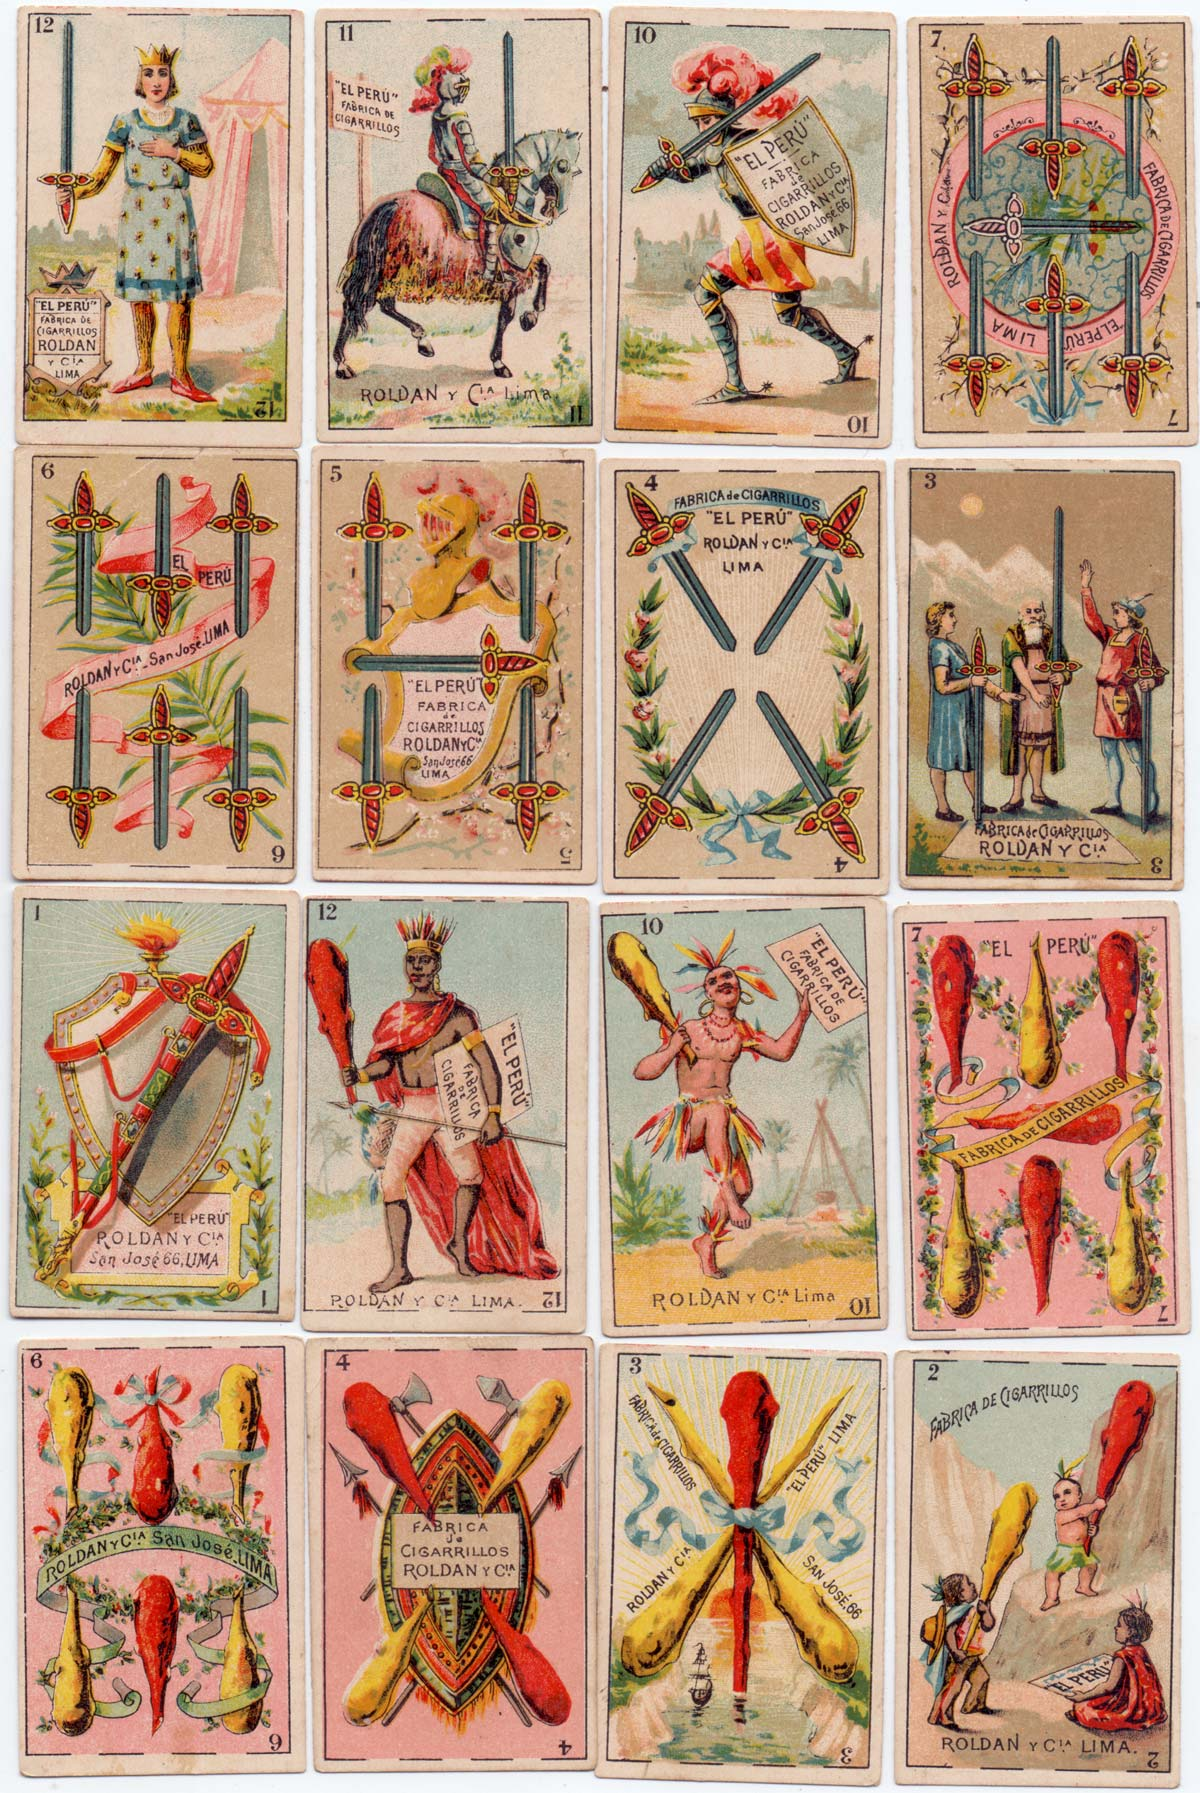 Cards from a fantasy publicity pack for the Peruvian tobacco company Roldan y Cia, San José 66, Lima. c.1890